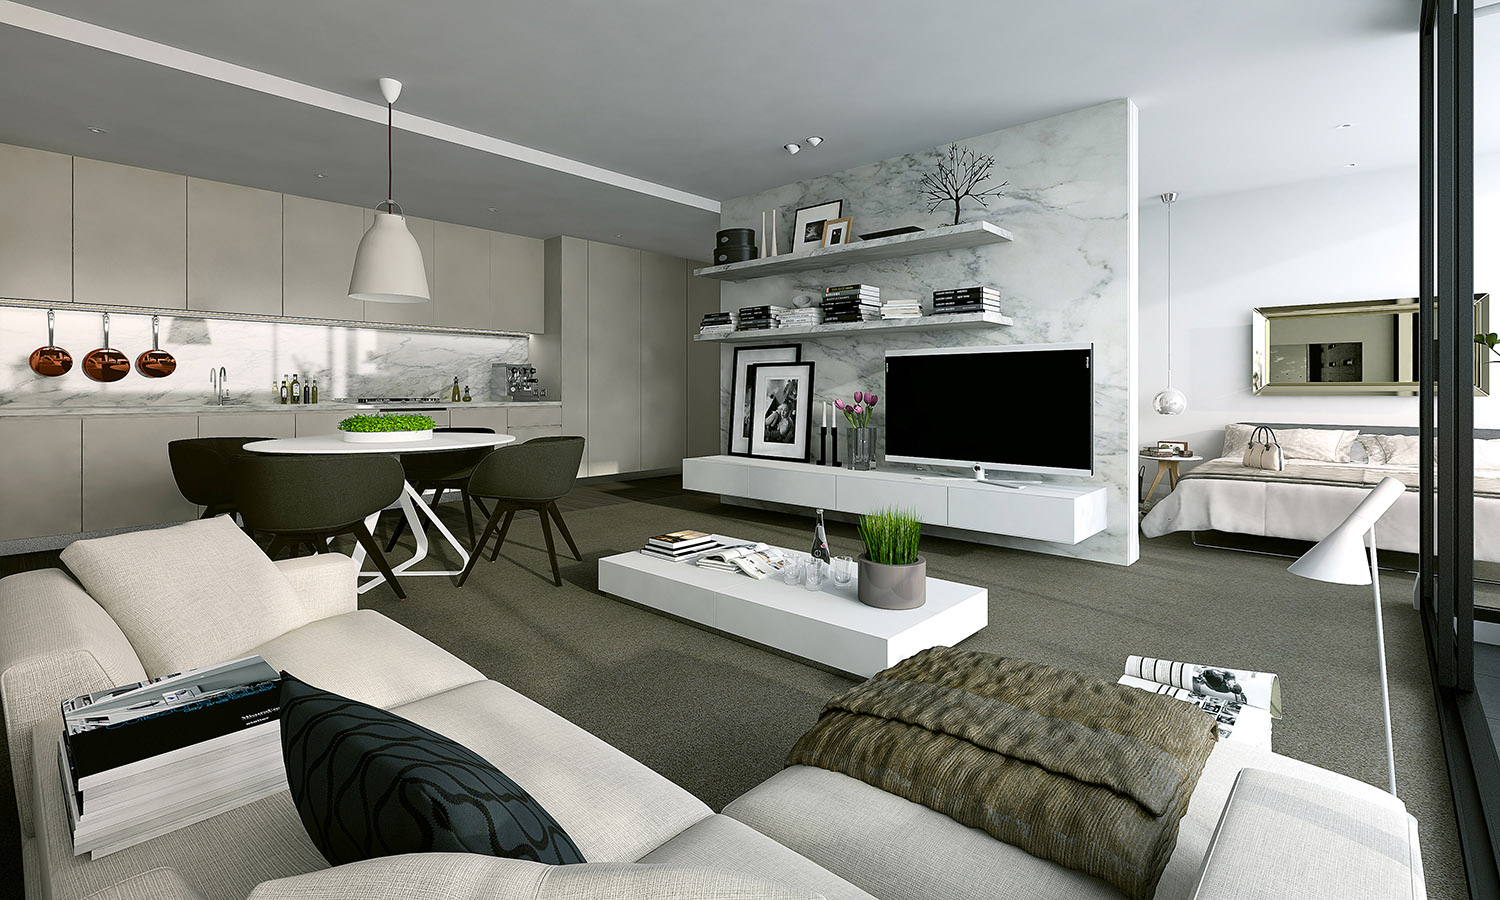 Studio Apartment Interiors Inspiration - Modern studio apartment design layouts